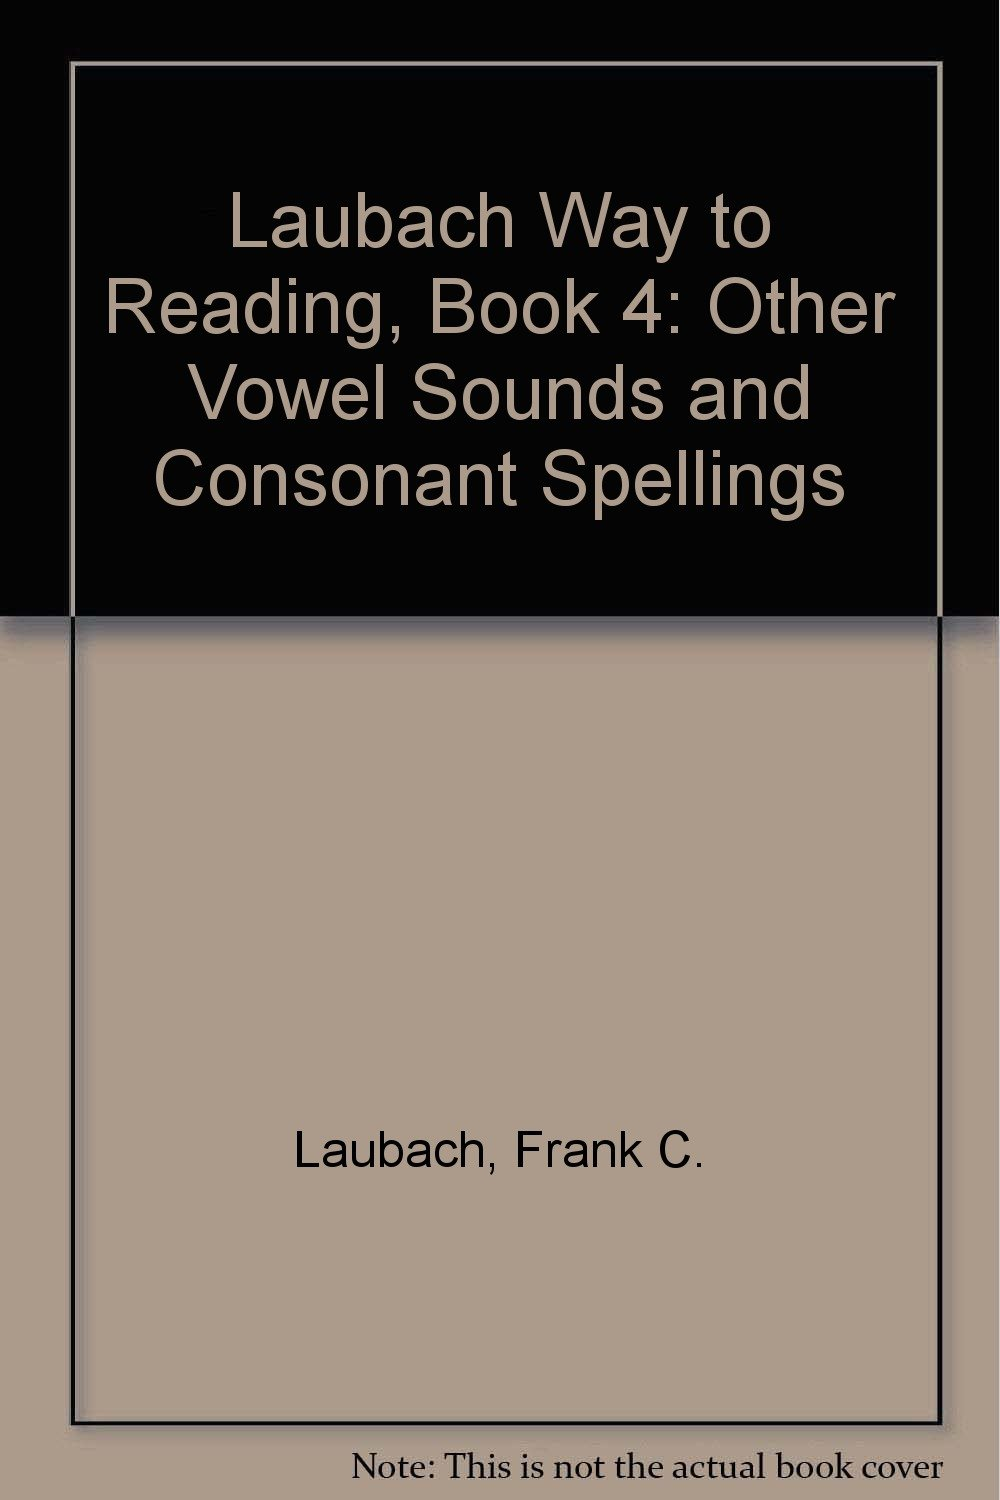 Download Laubach Way to Reading 4: Other Vowel Sounds and Consonant Spellings pdf